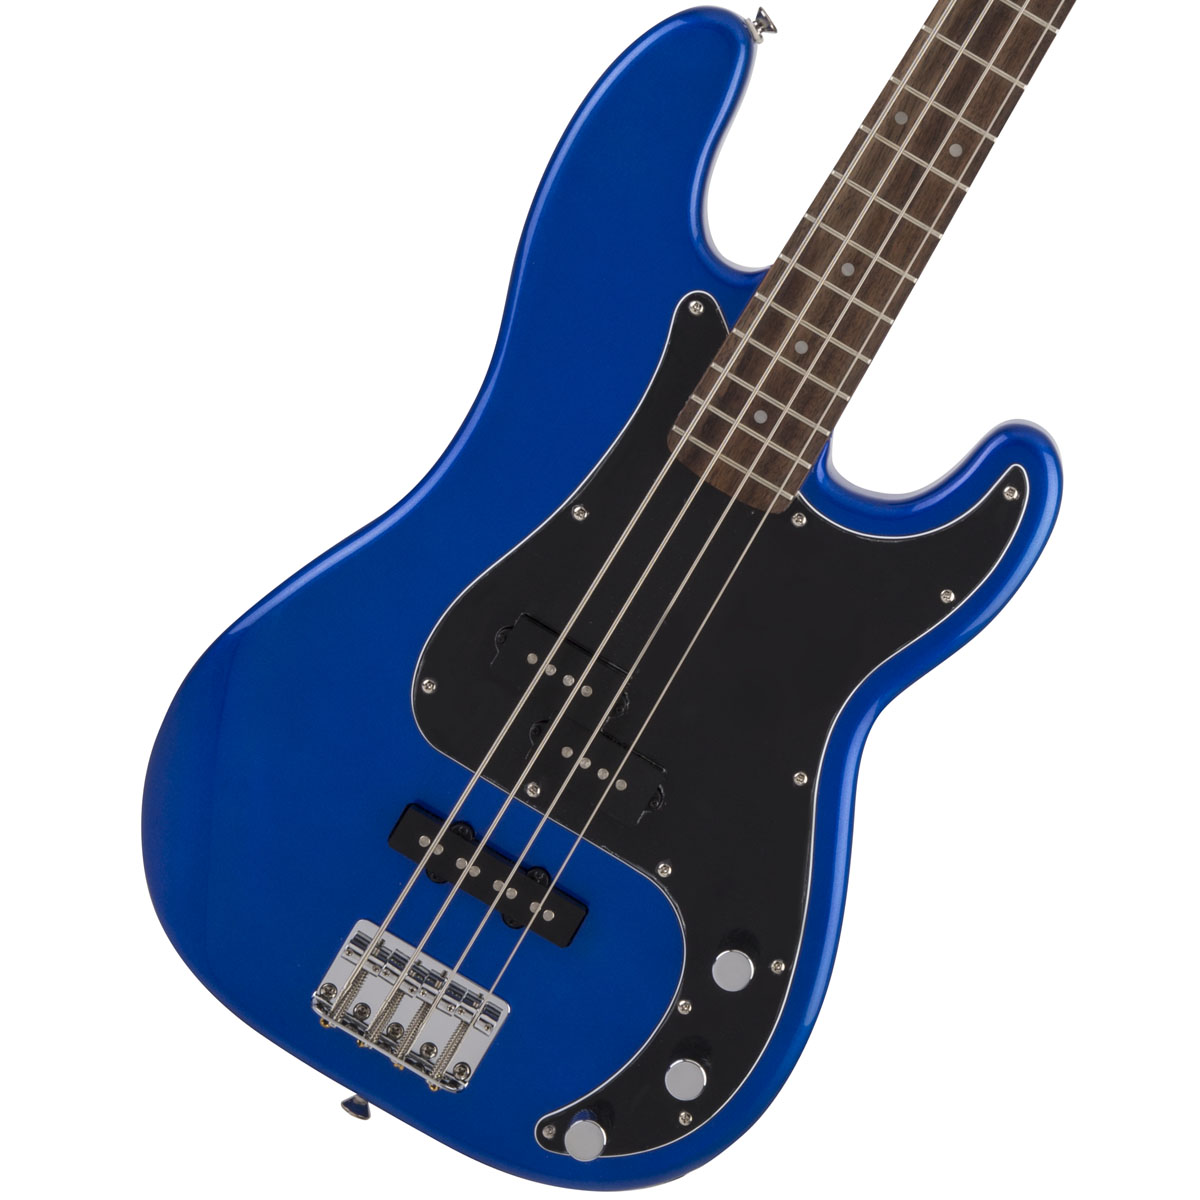 Squier by Fender / Affinity Precision Bass PJ Imperial Blue Indian Laurel